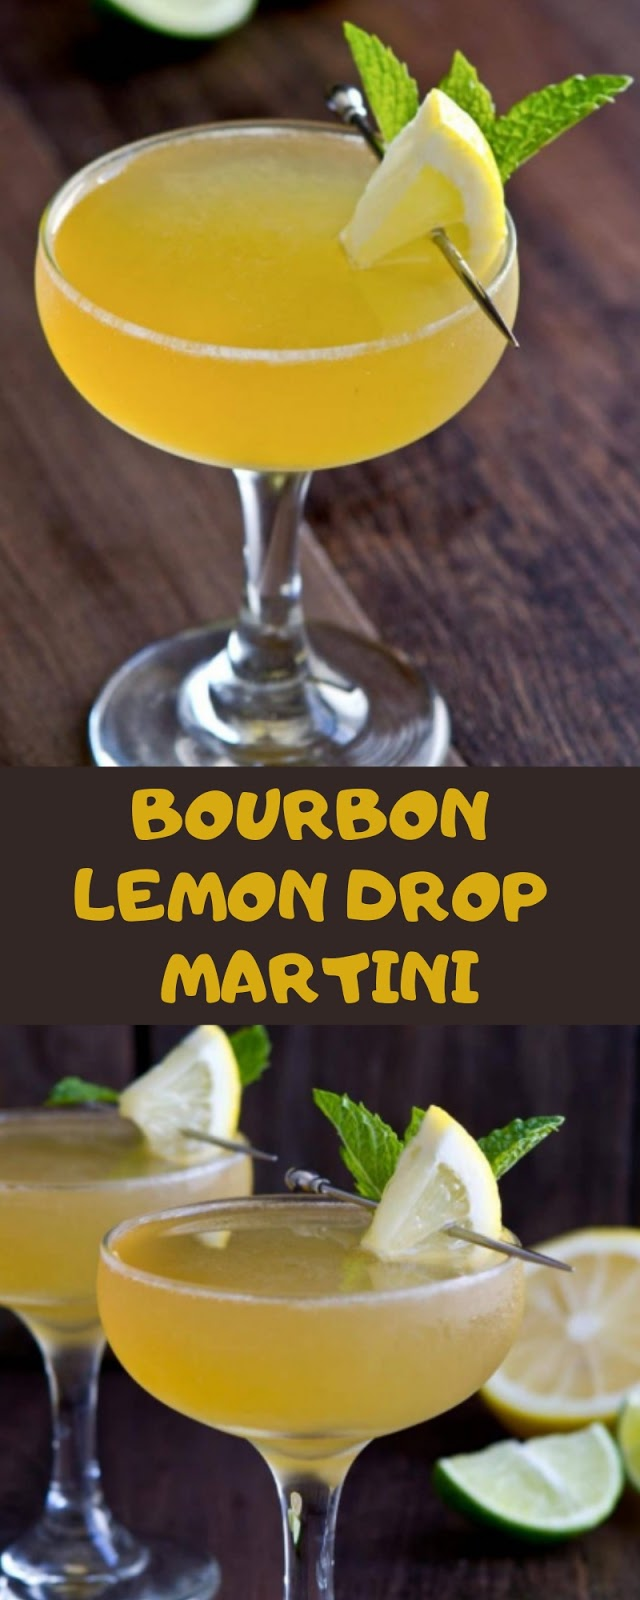 BOURBON LEMON DROP MARTINI